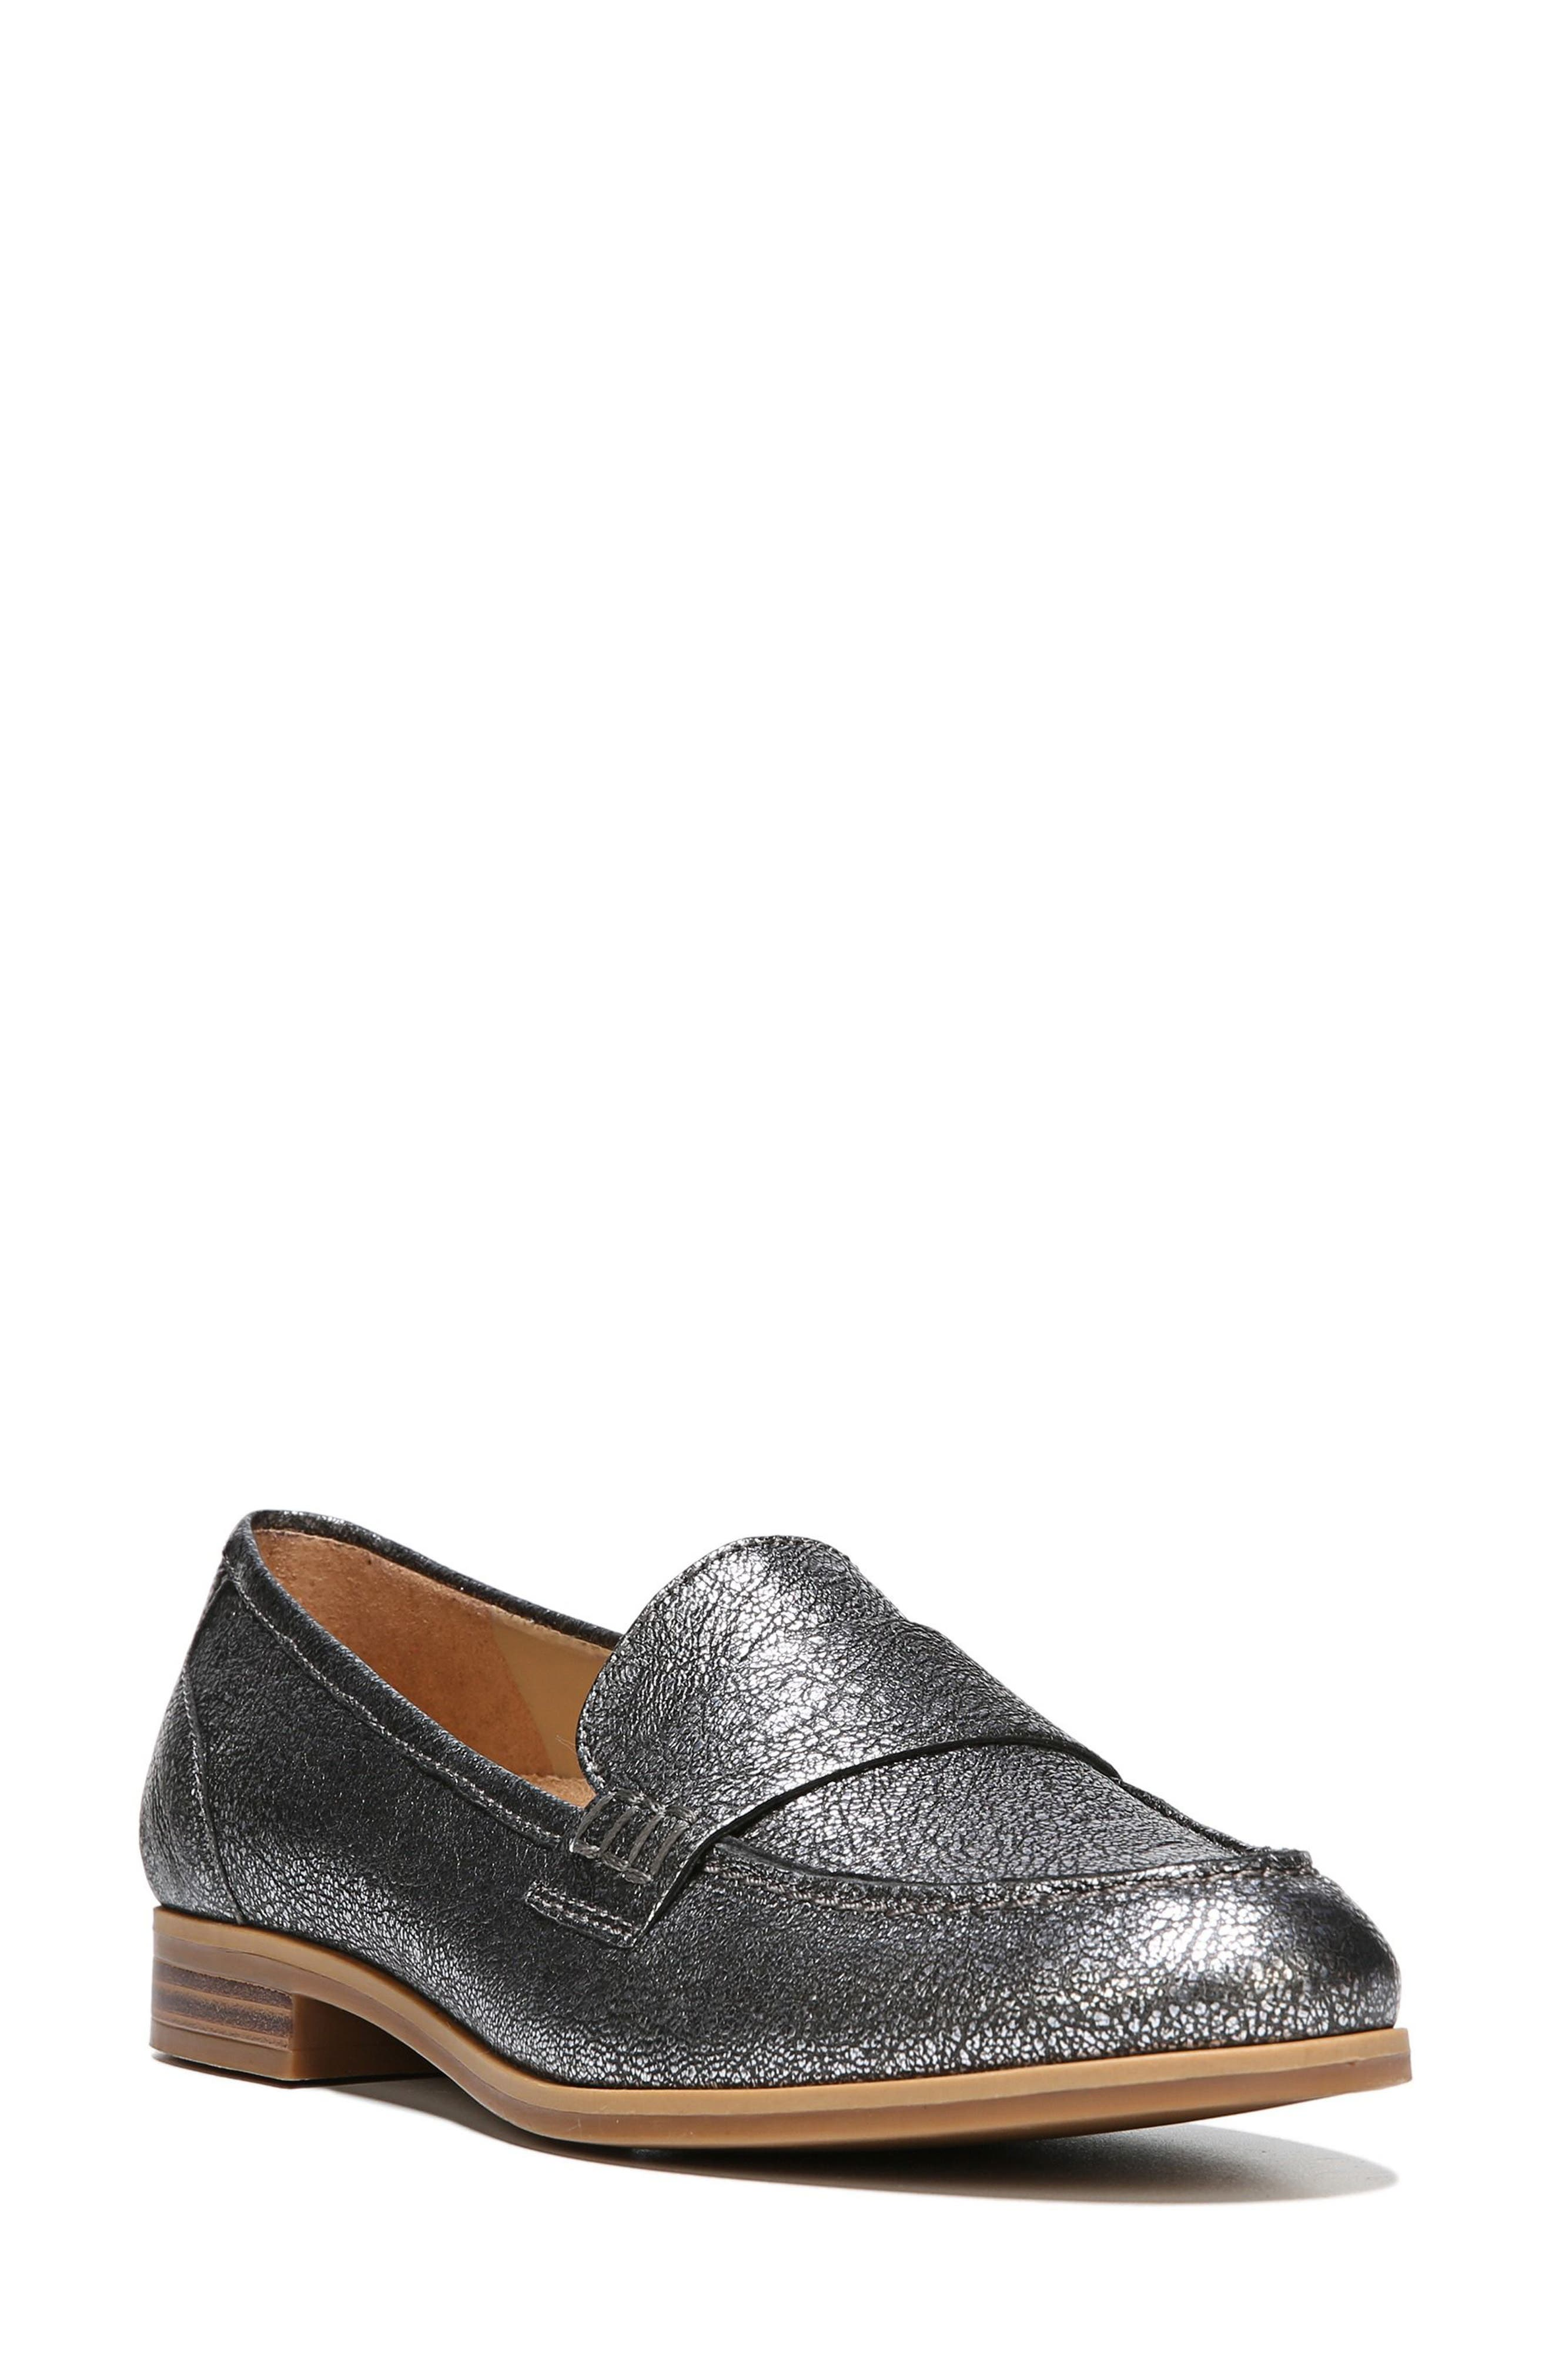 Veronica Loafer,                         Main,                         color, Silver Leather